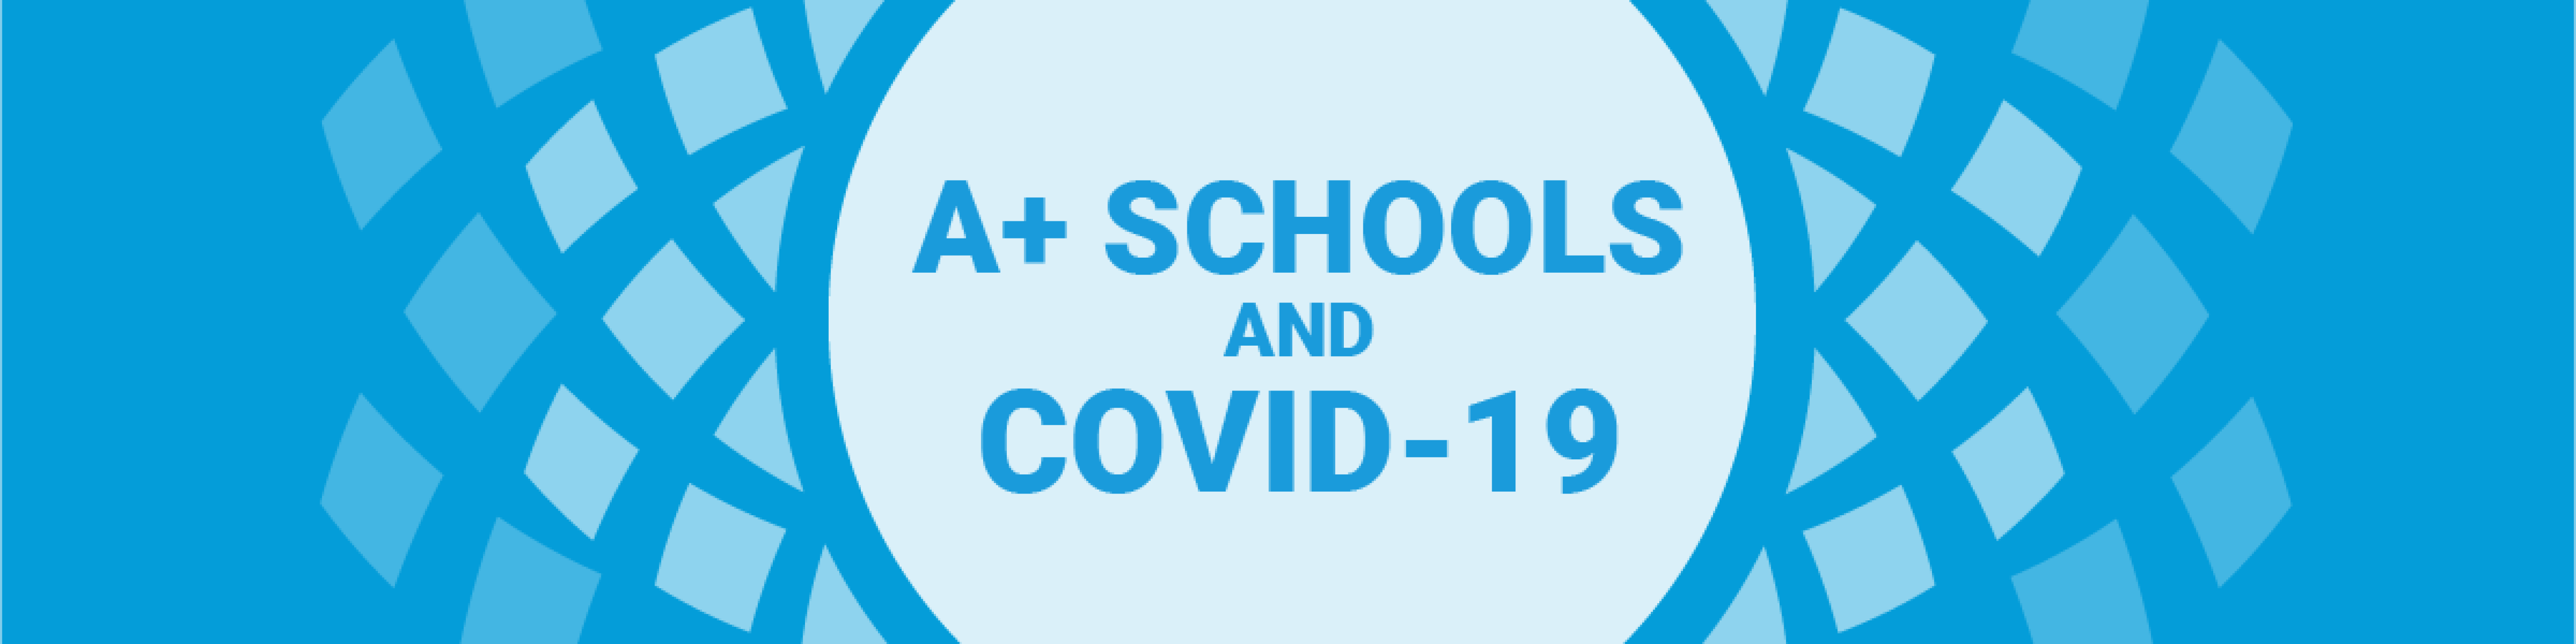 Aplus and Covid